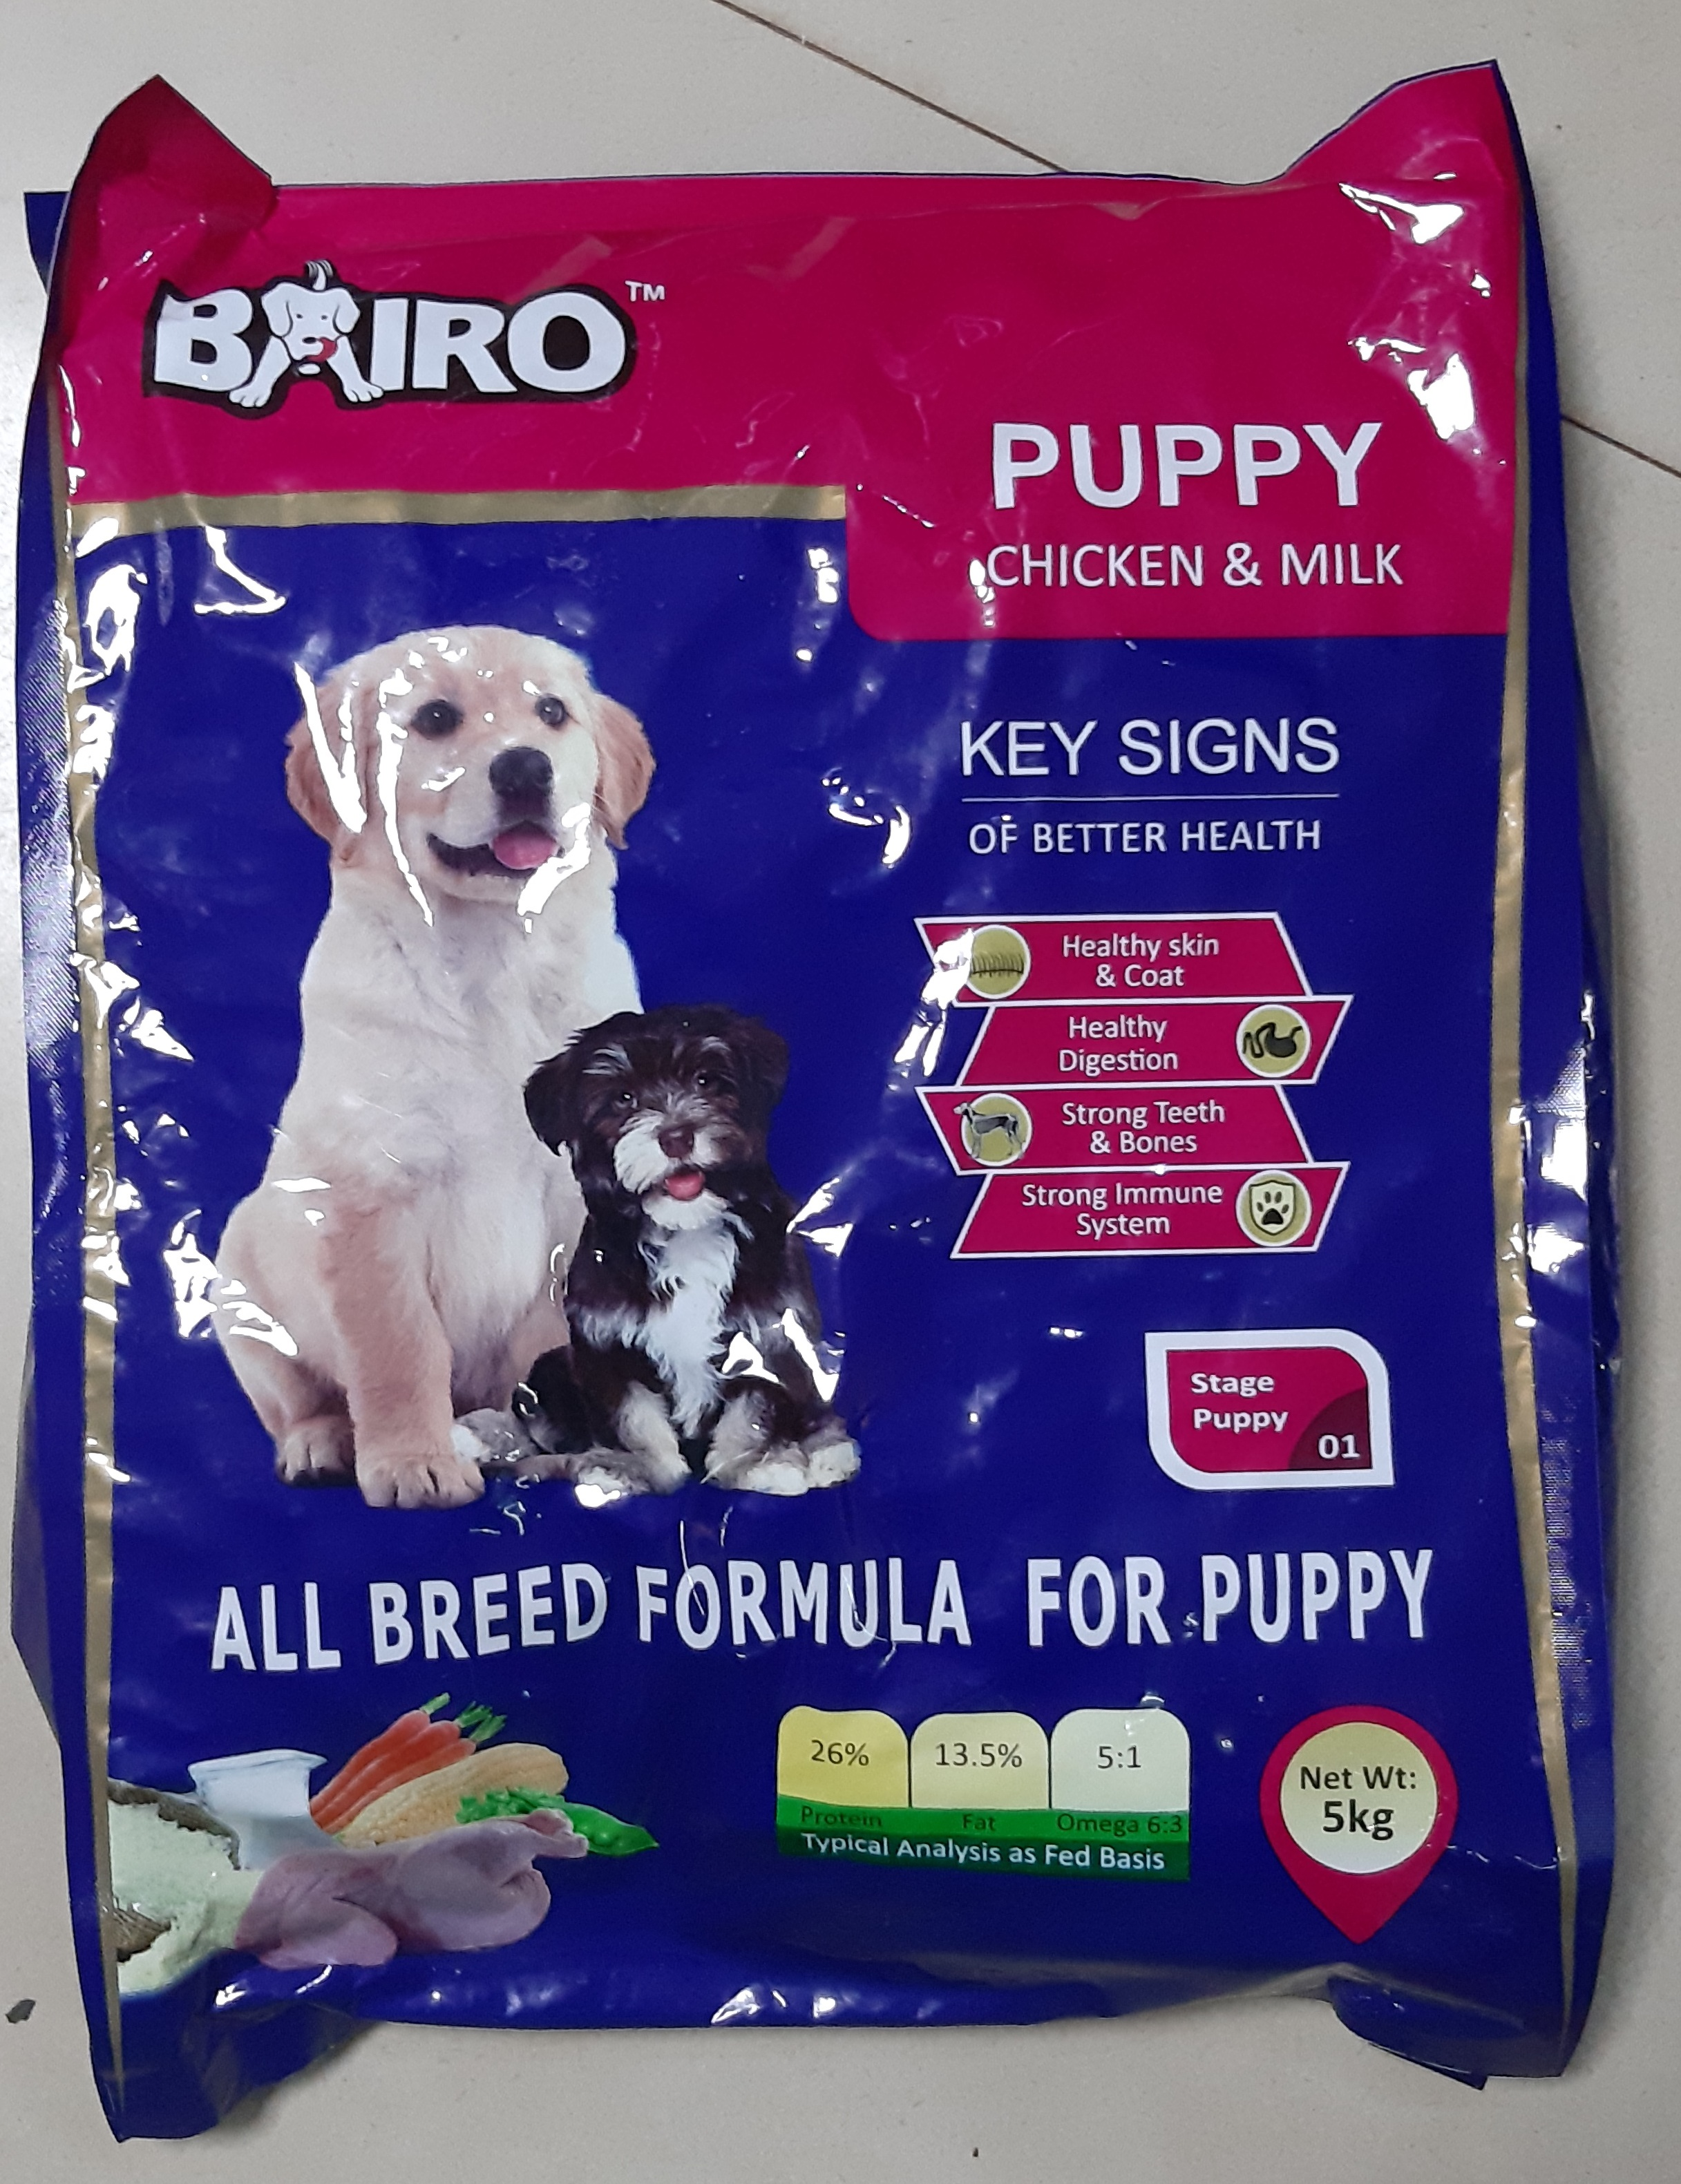 BAIRO puppy chicken and milk (5Kg)